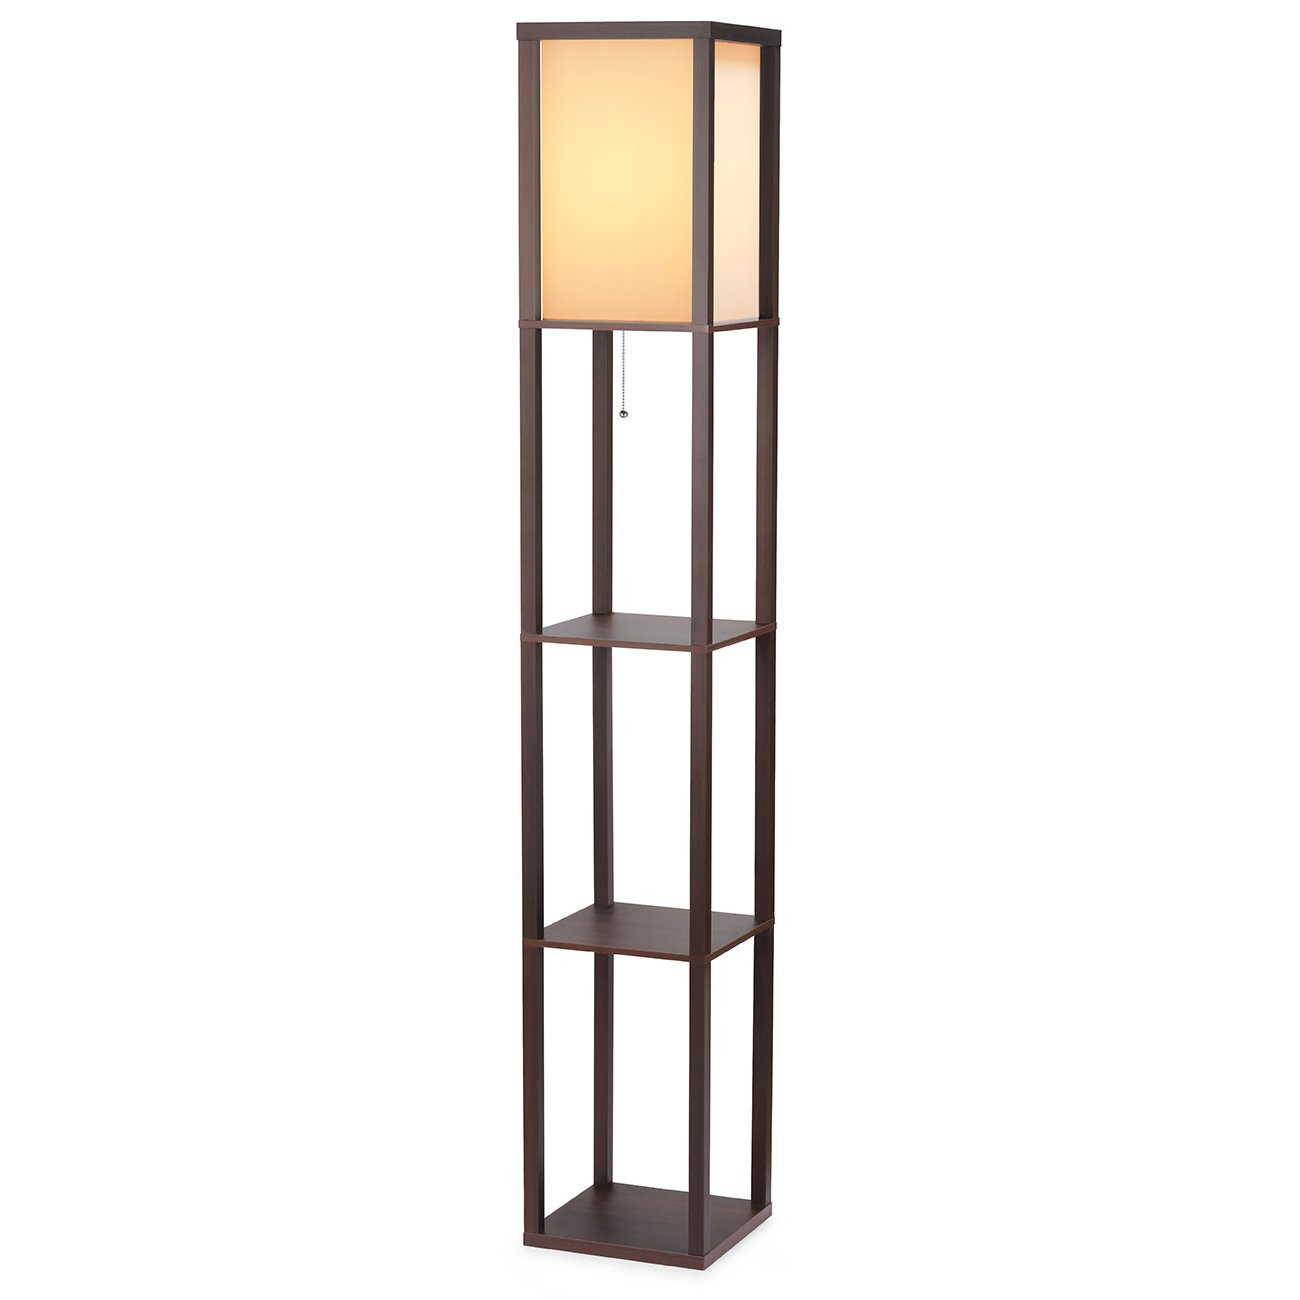 SHINE HAI Shelf Floor Lamp, Shade Diffused Light Source with Open Box Display Shelves, 63inch Modern Mood Lighting for Bedroom and Living Room, Brown by SHINE HAI